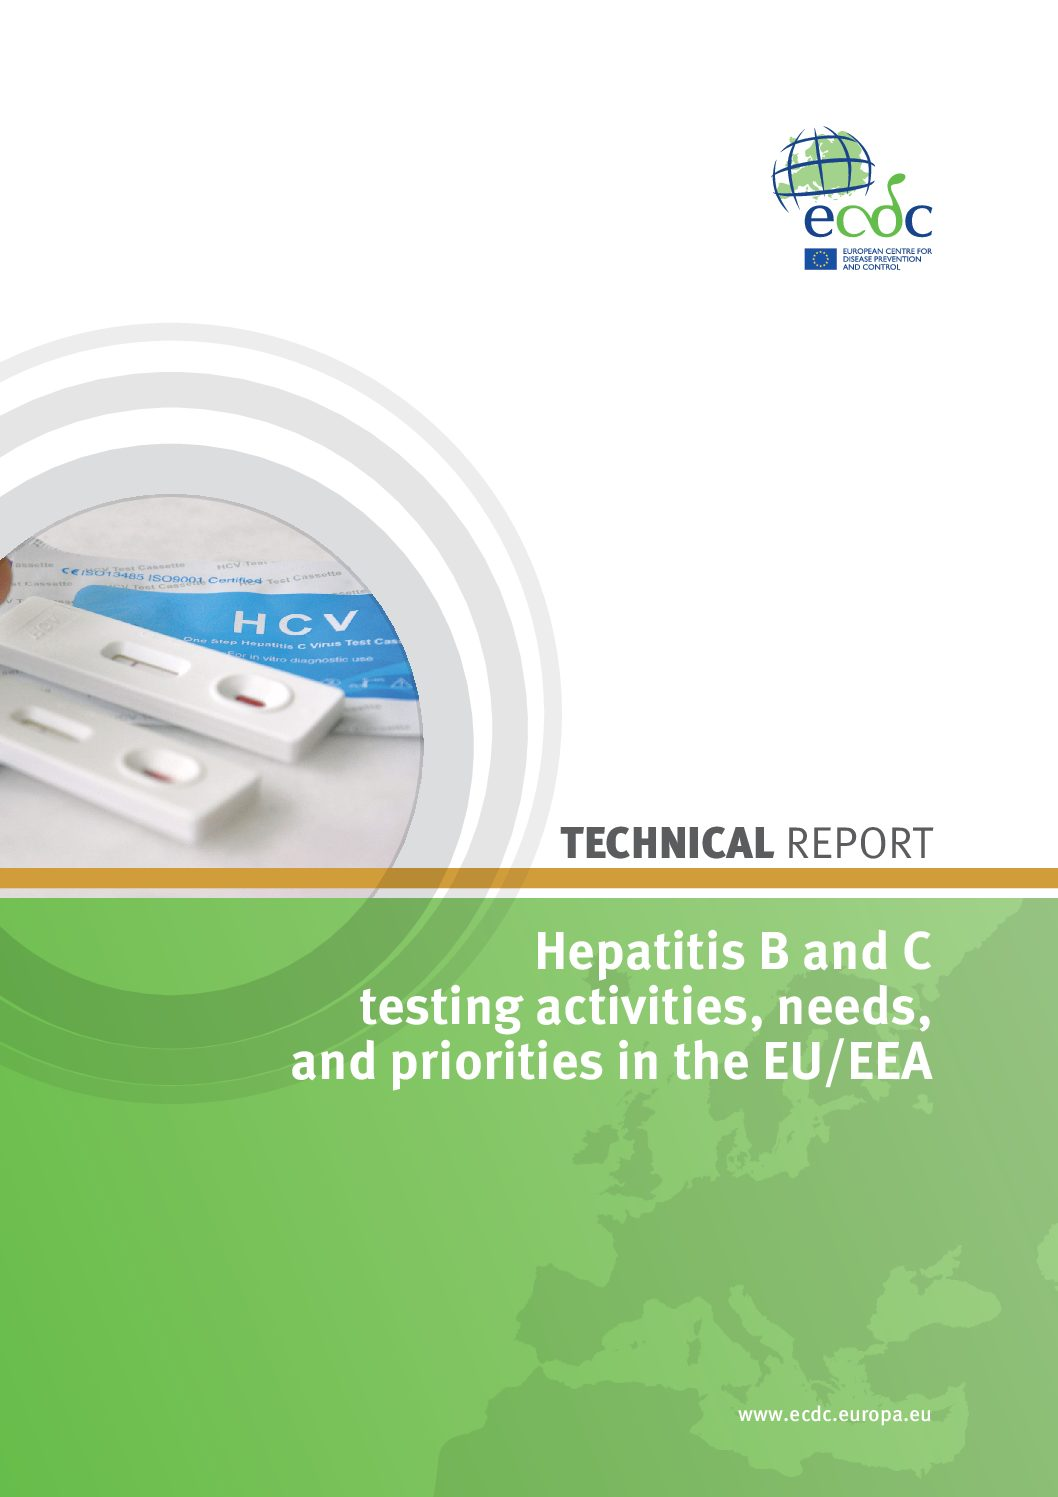 Hepatitis B and C testing activities, needs, and priorities in the EU/EEA. Technical report